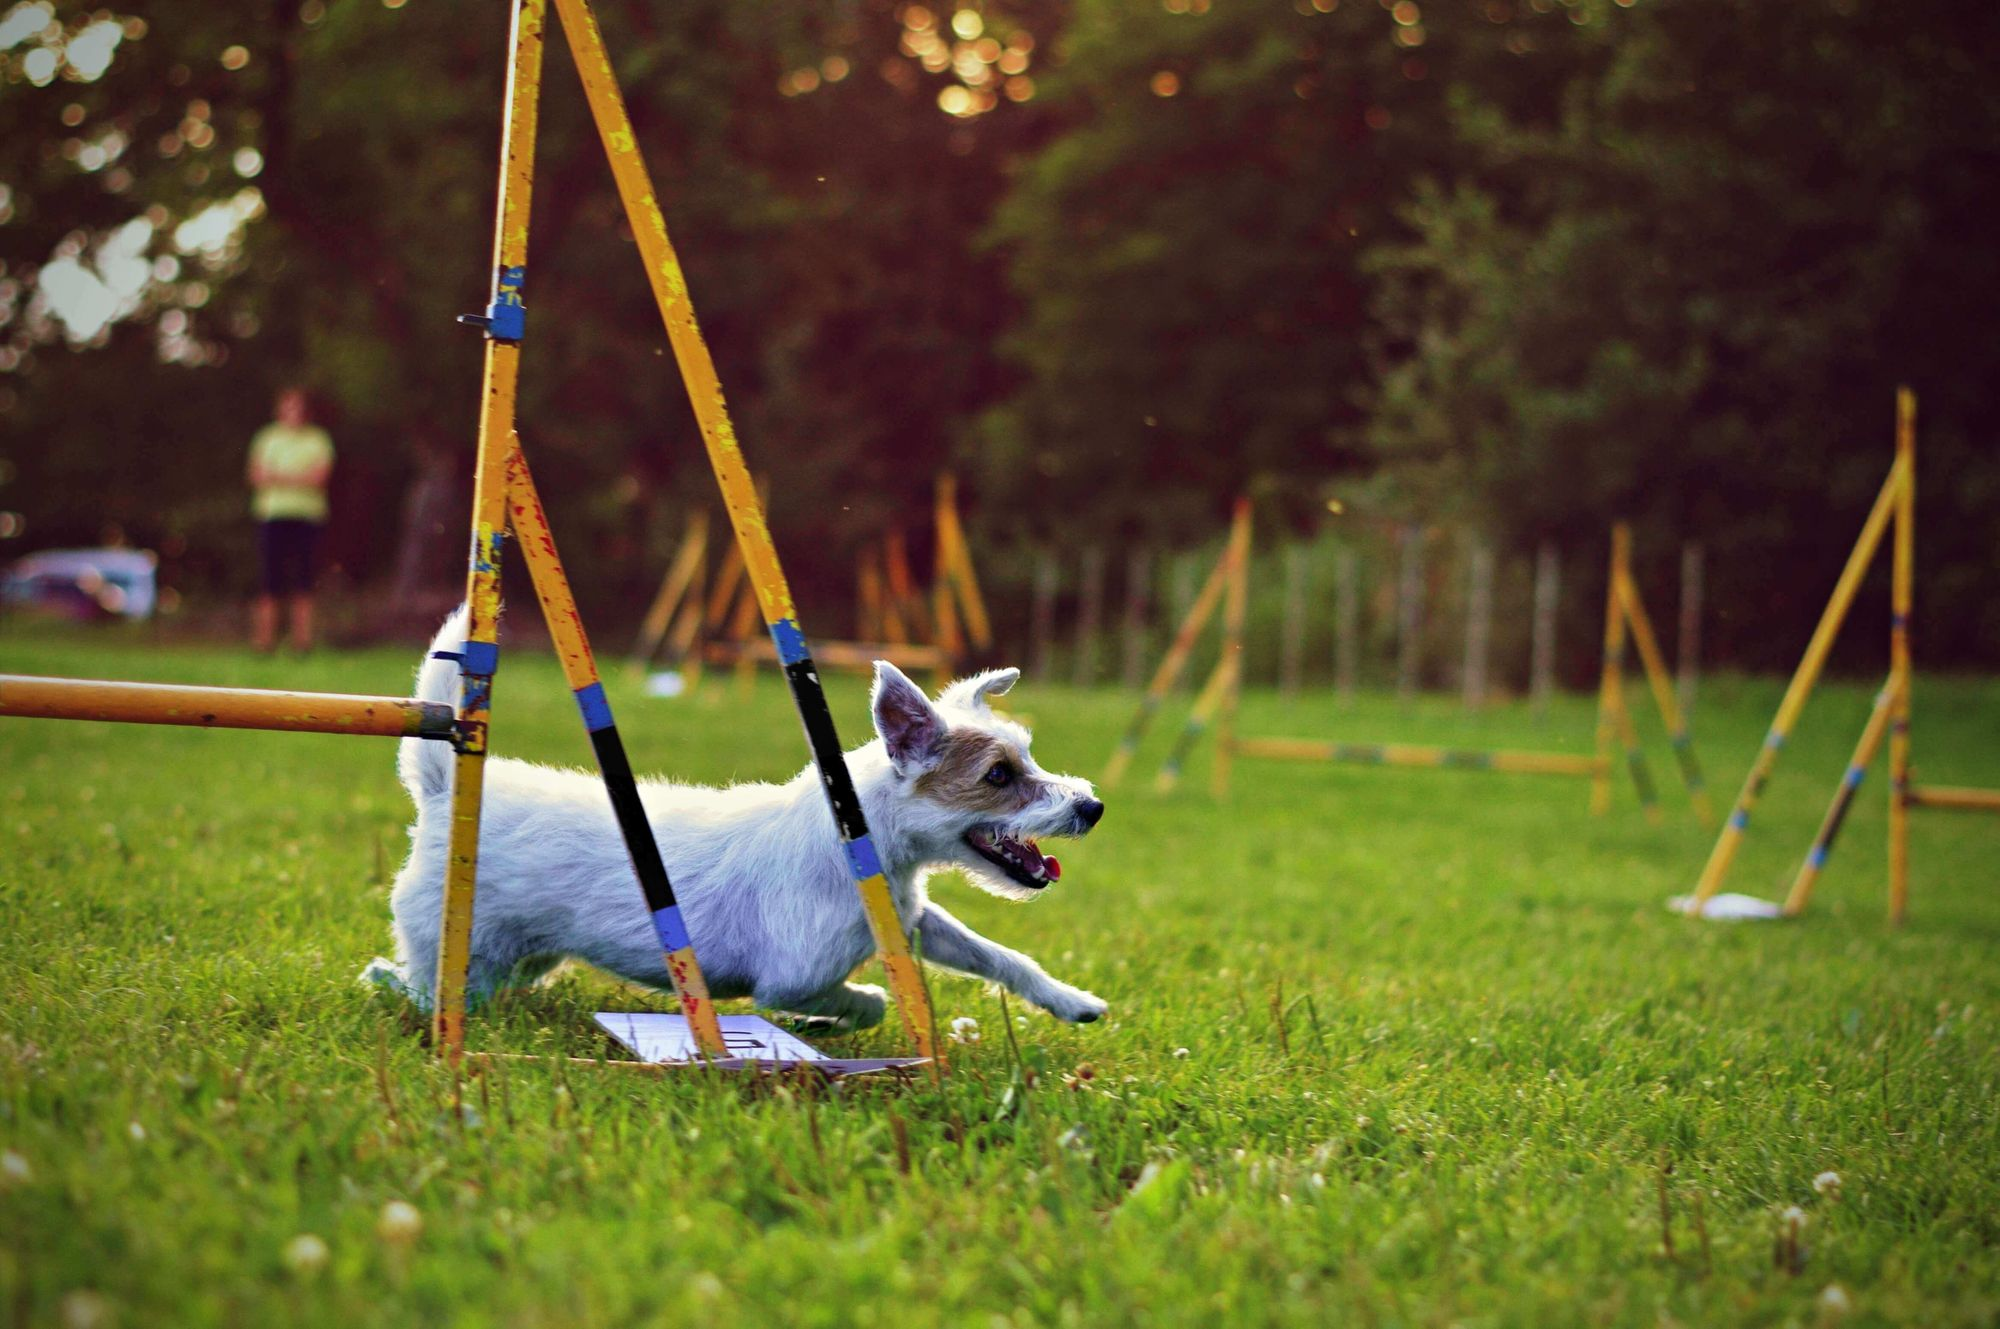 small-jack-russel-terrier-completes-course-during-agility-training--1-